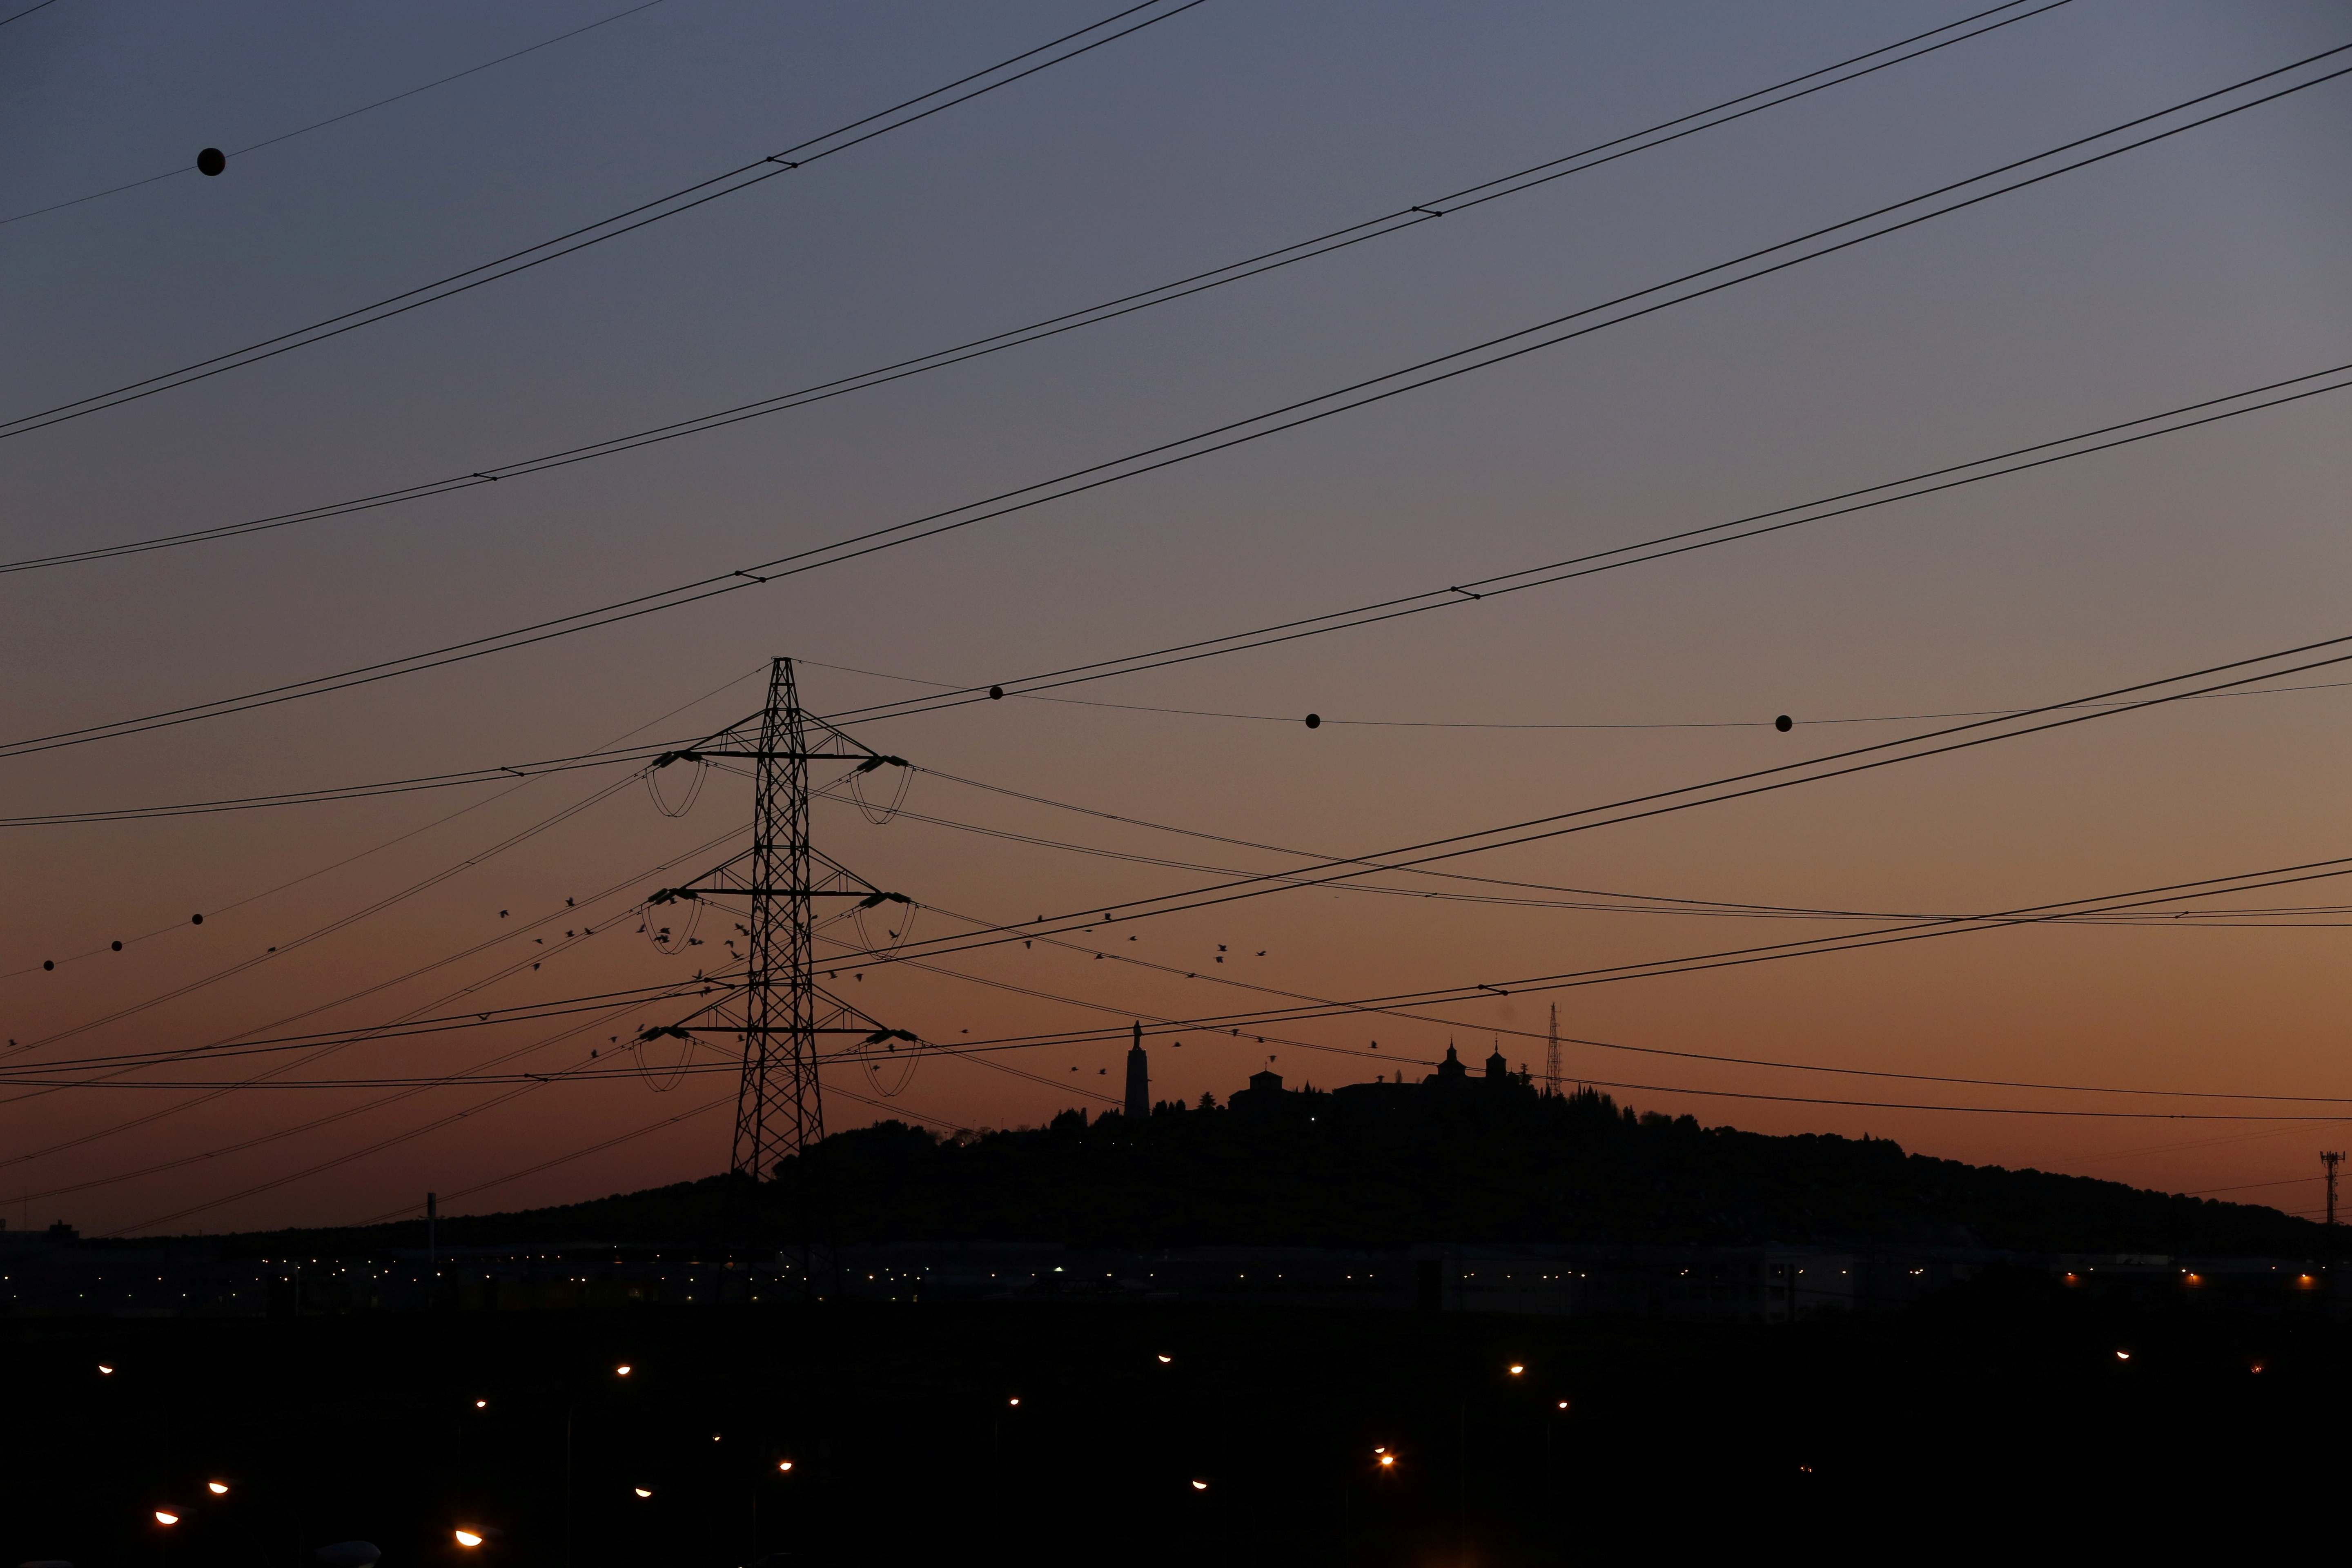 Power lines connecting pylons of high-tension electricity are seen at sunset outside Madrid, Spain January 24, 2017. REUTERS/Susana Vera